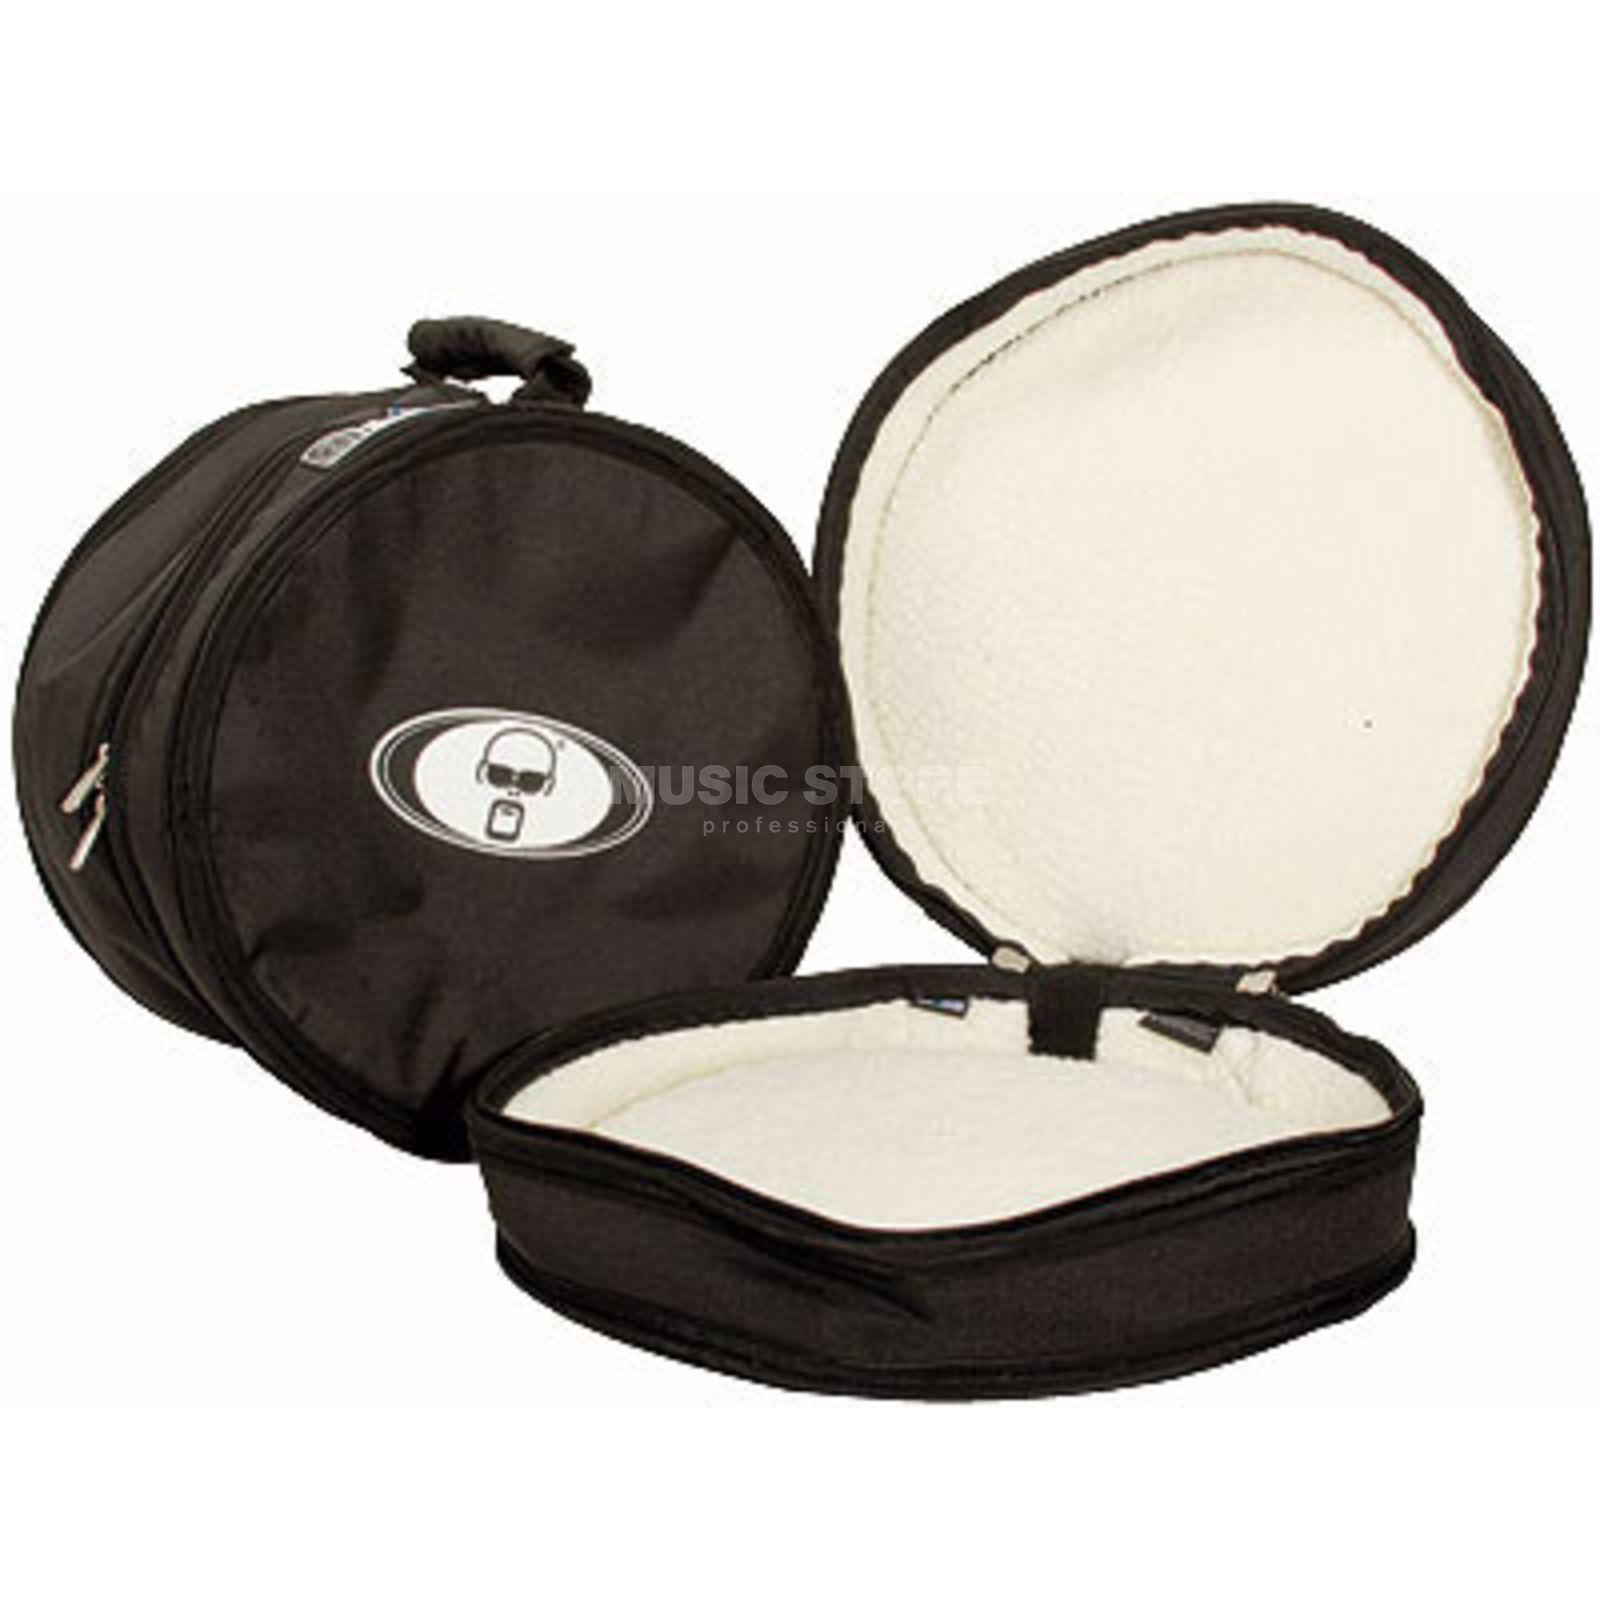 "Protection Racket FloorTom Bag 2018, 18""x18"" Product Image"